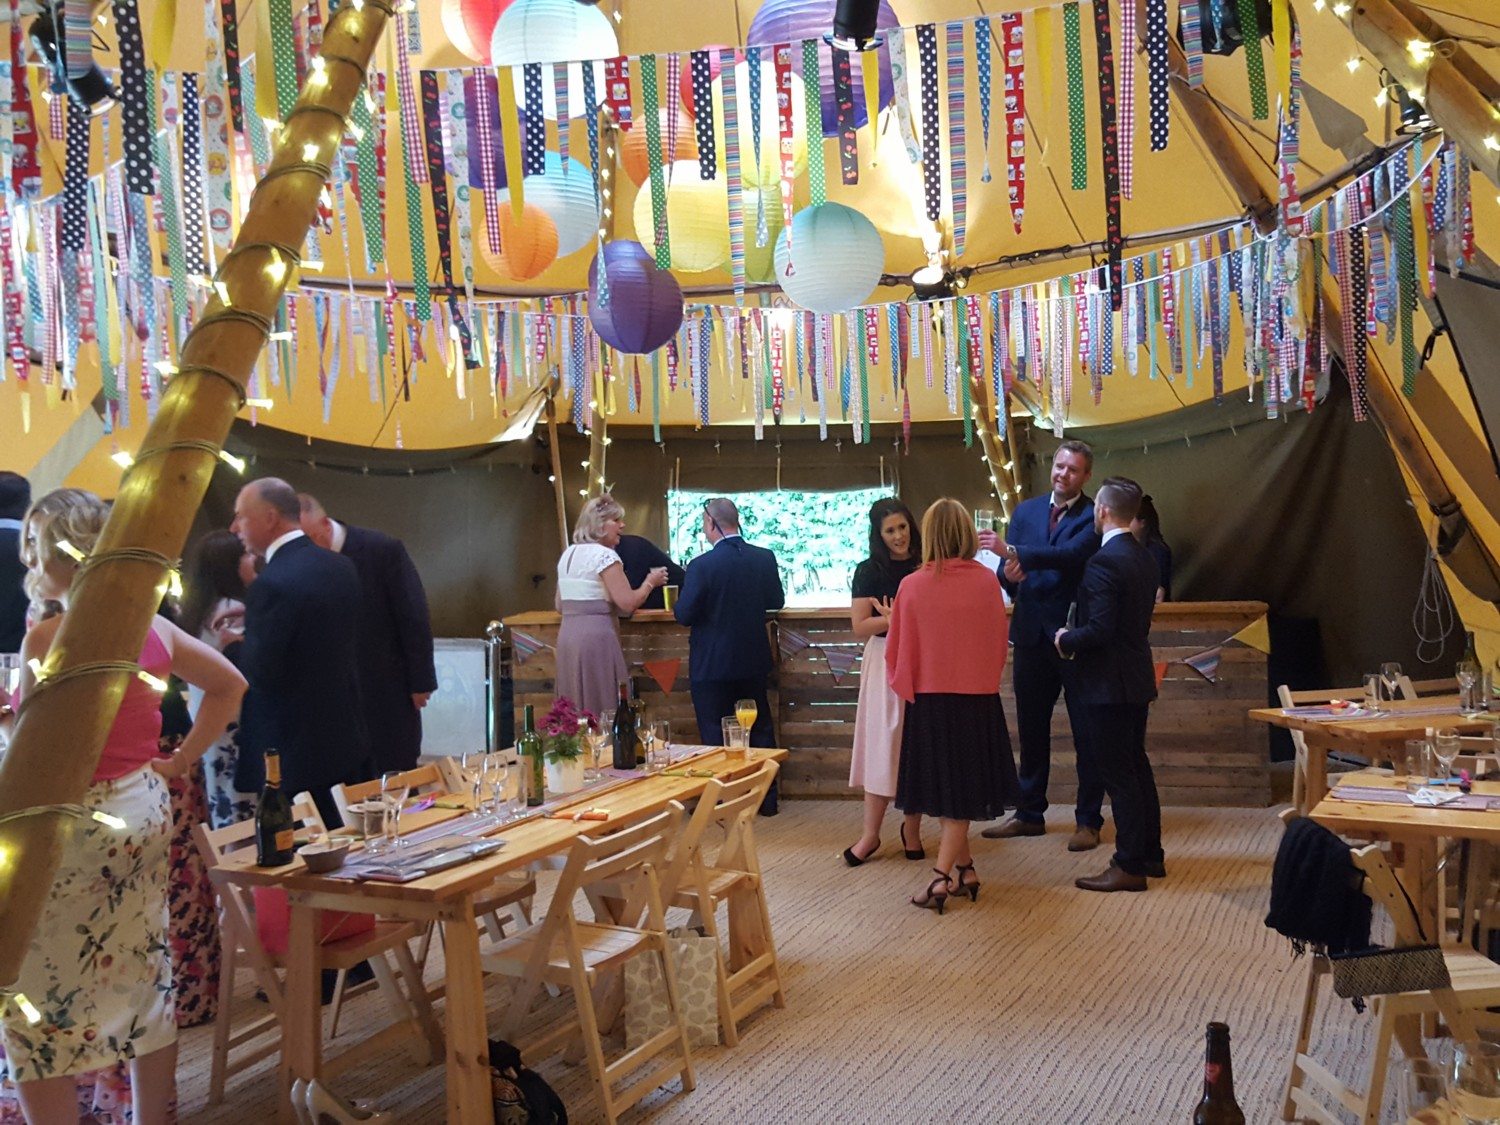 Fabulous Decorated Tipi Wedding Bar